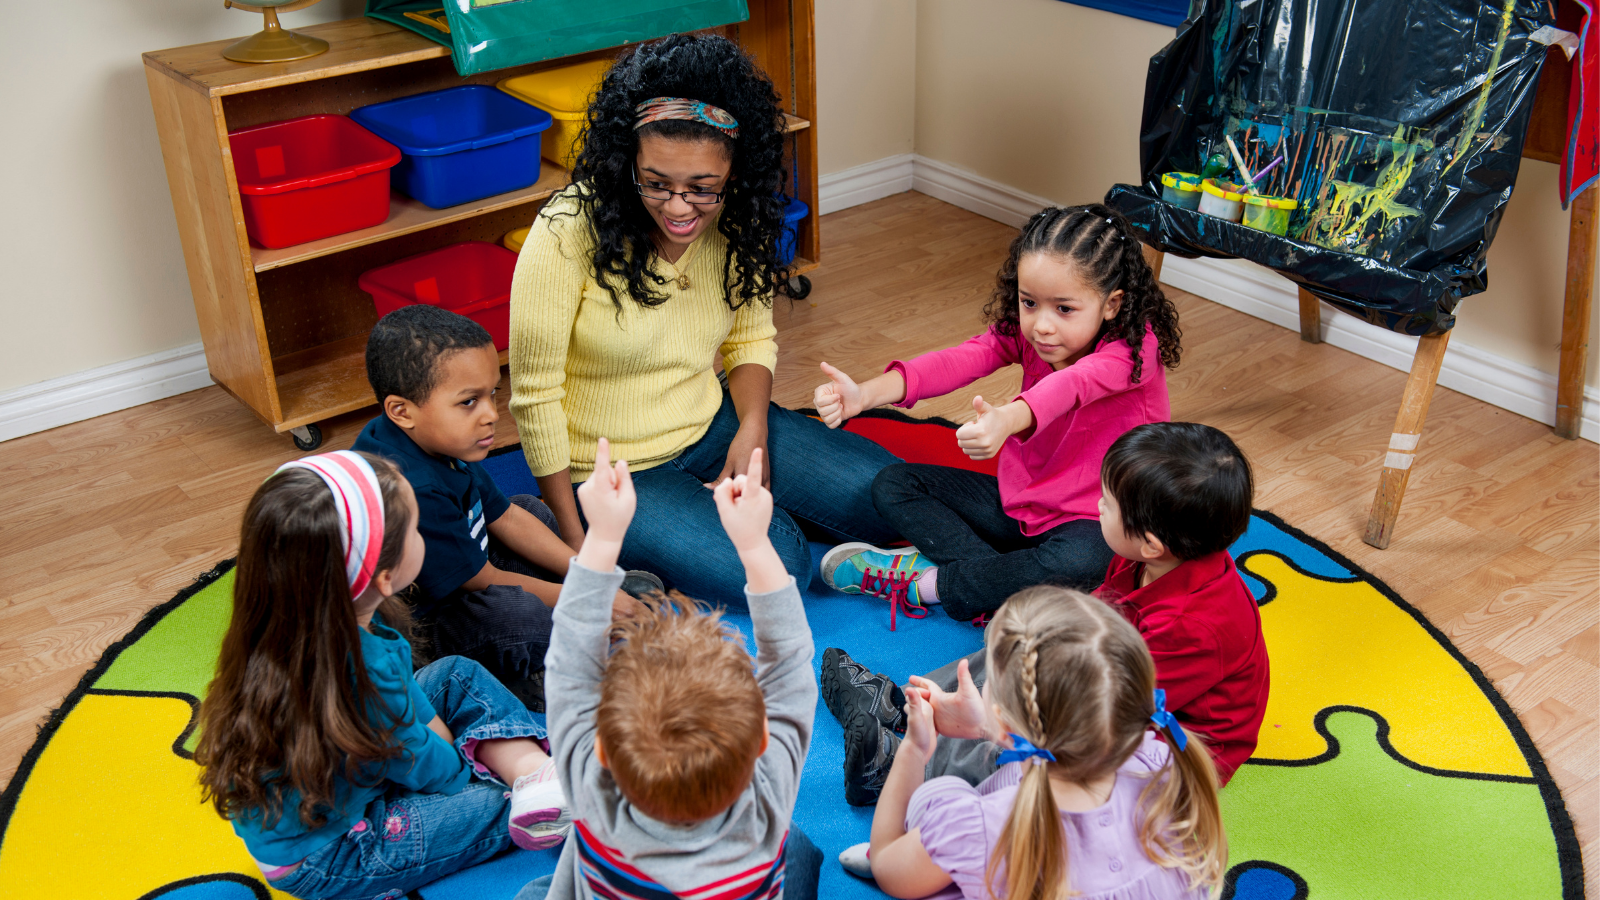 How to Onboard New Childcare Staff: 8 Inspiring Ideas